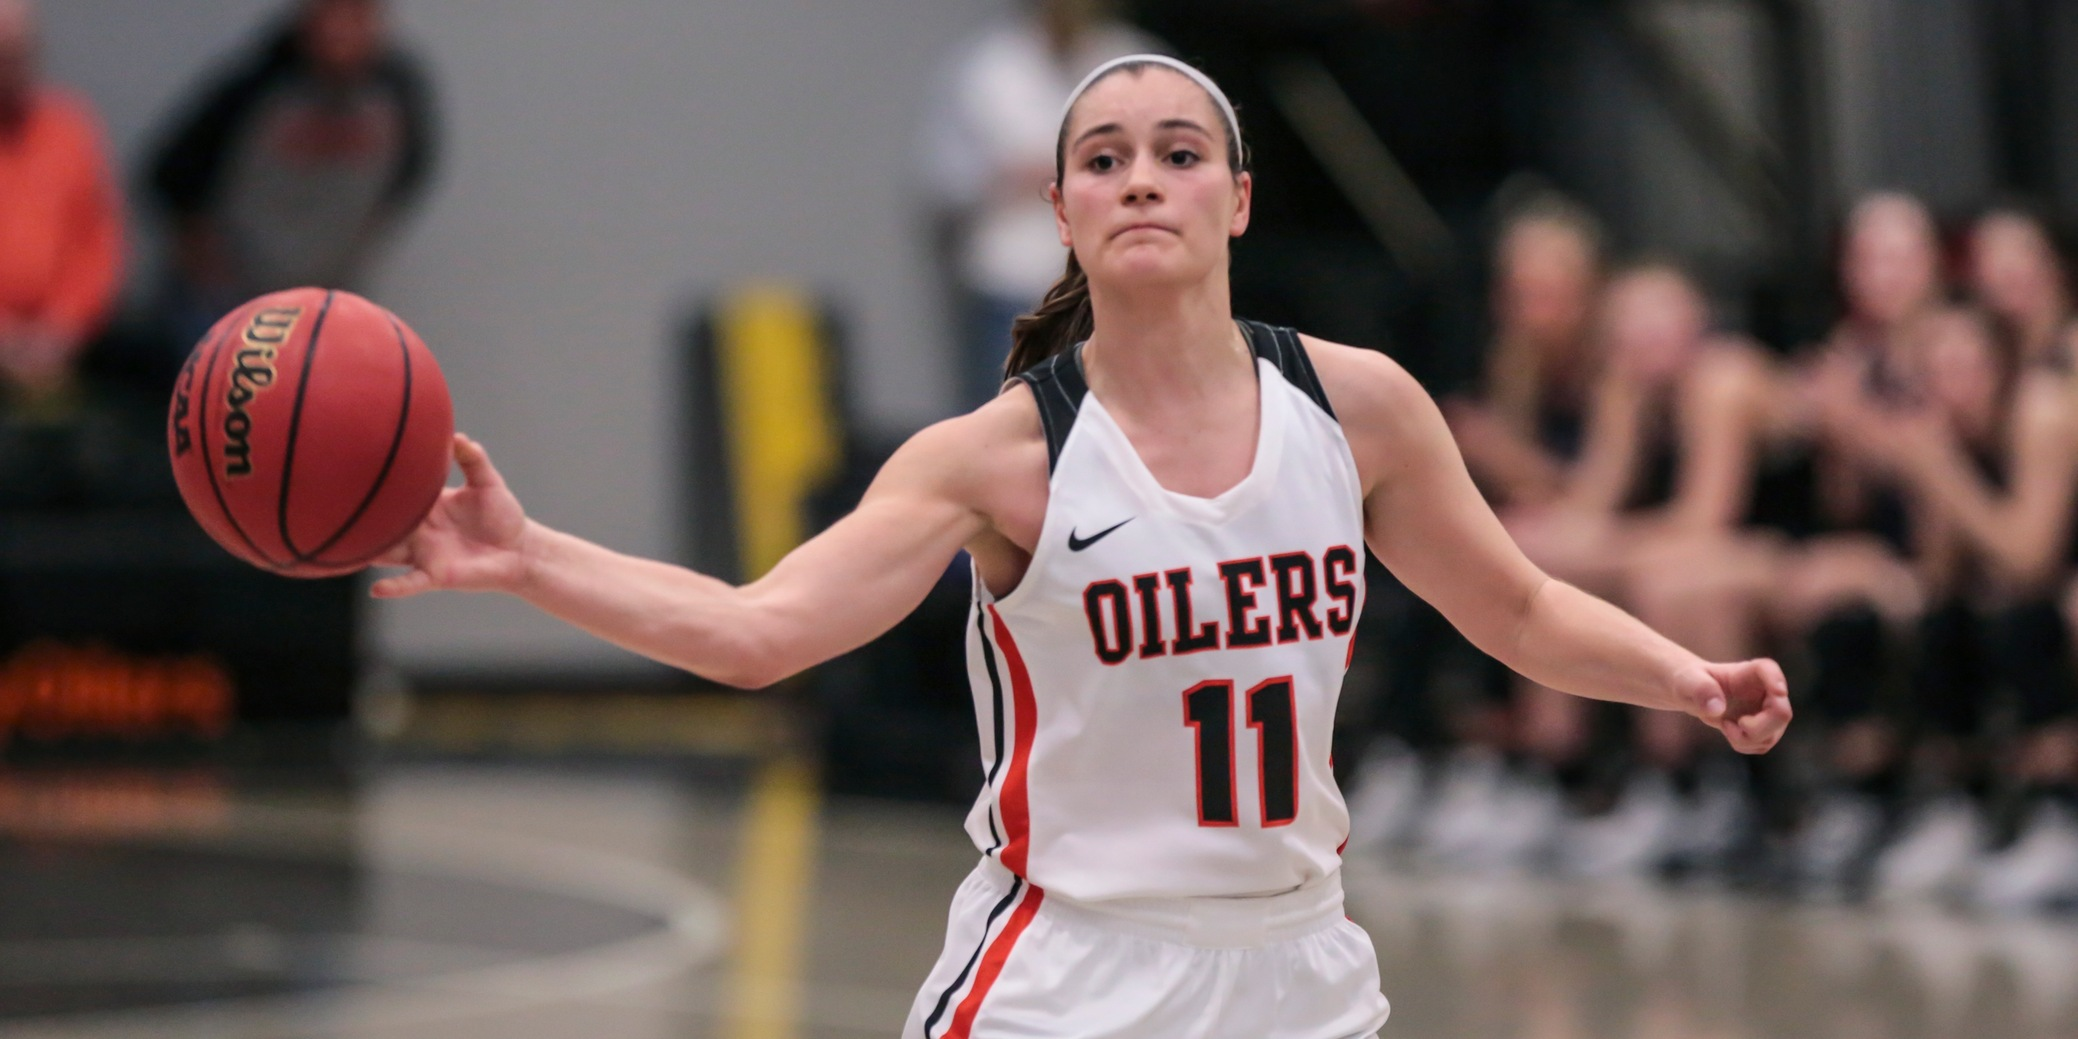 Oilers Cruise Past Storm at Home